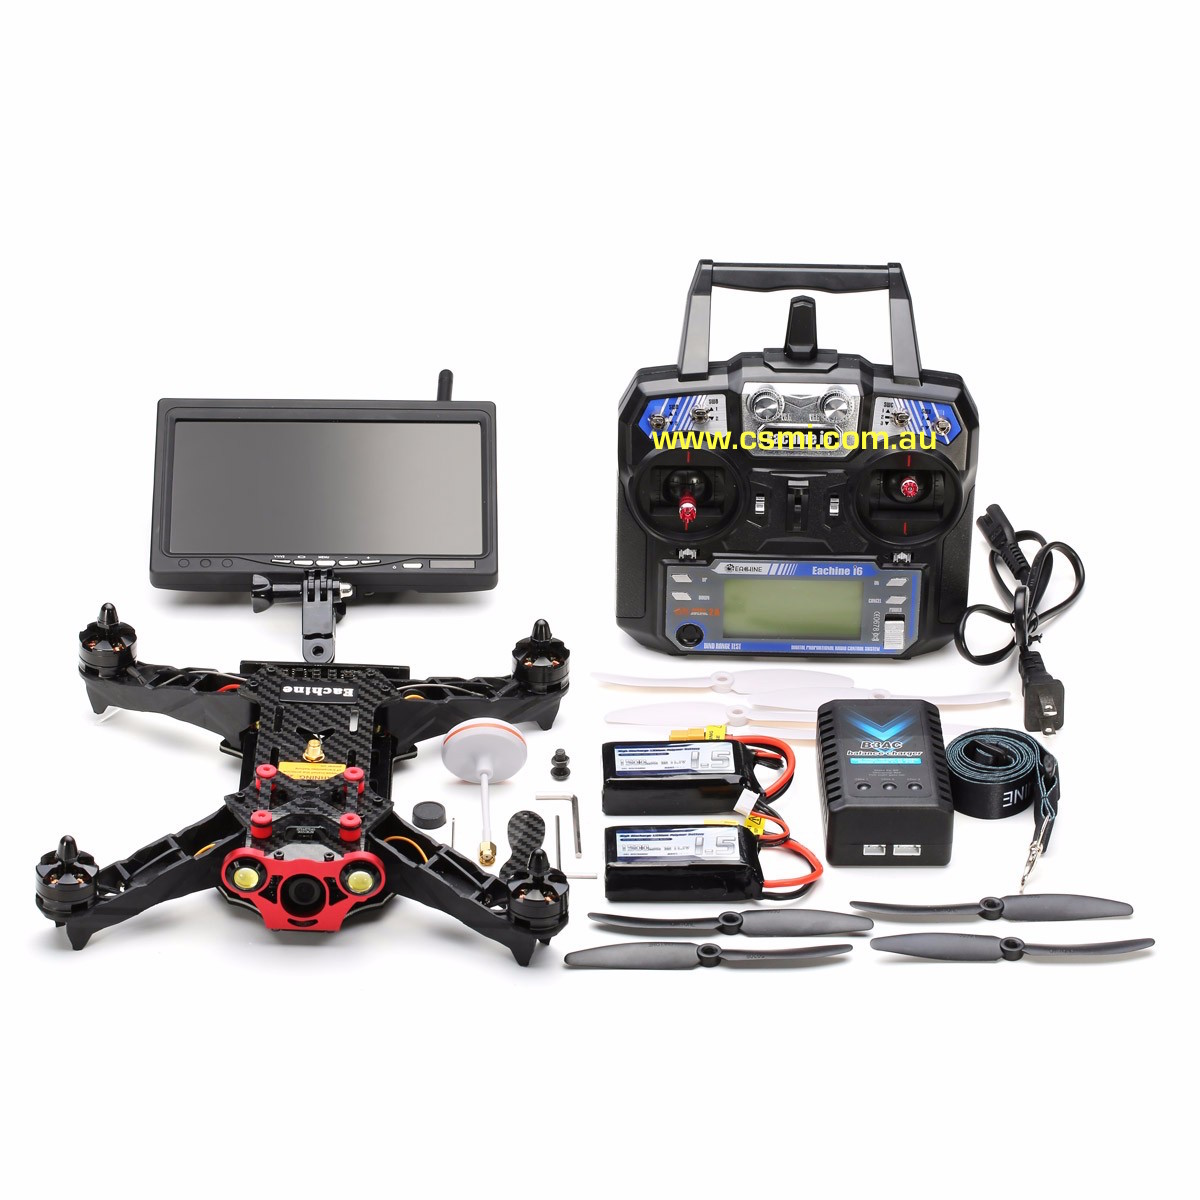 RTR Drone combo kits